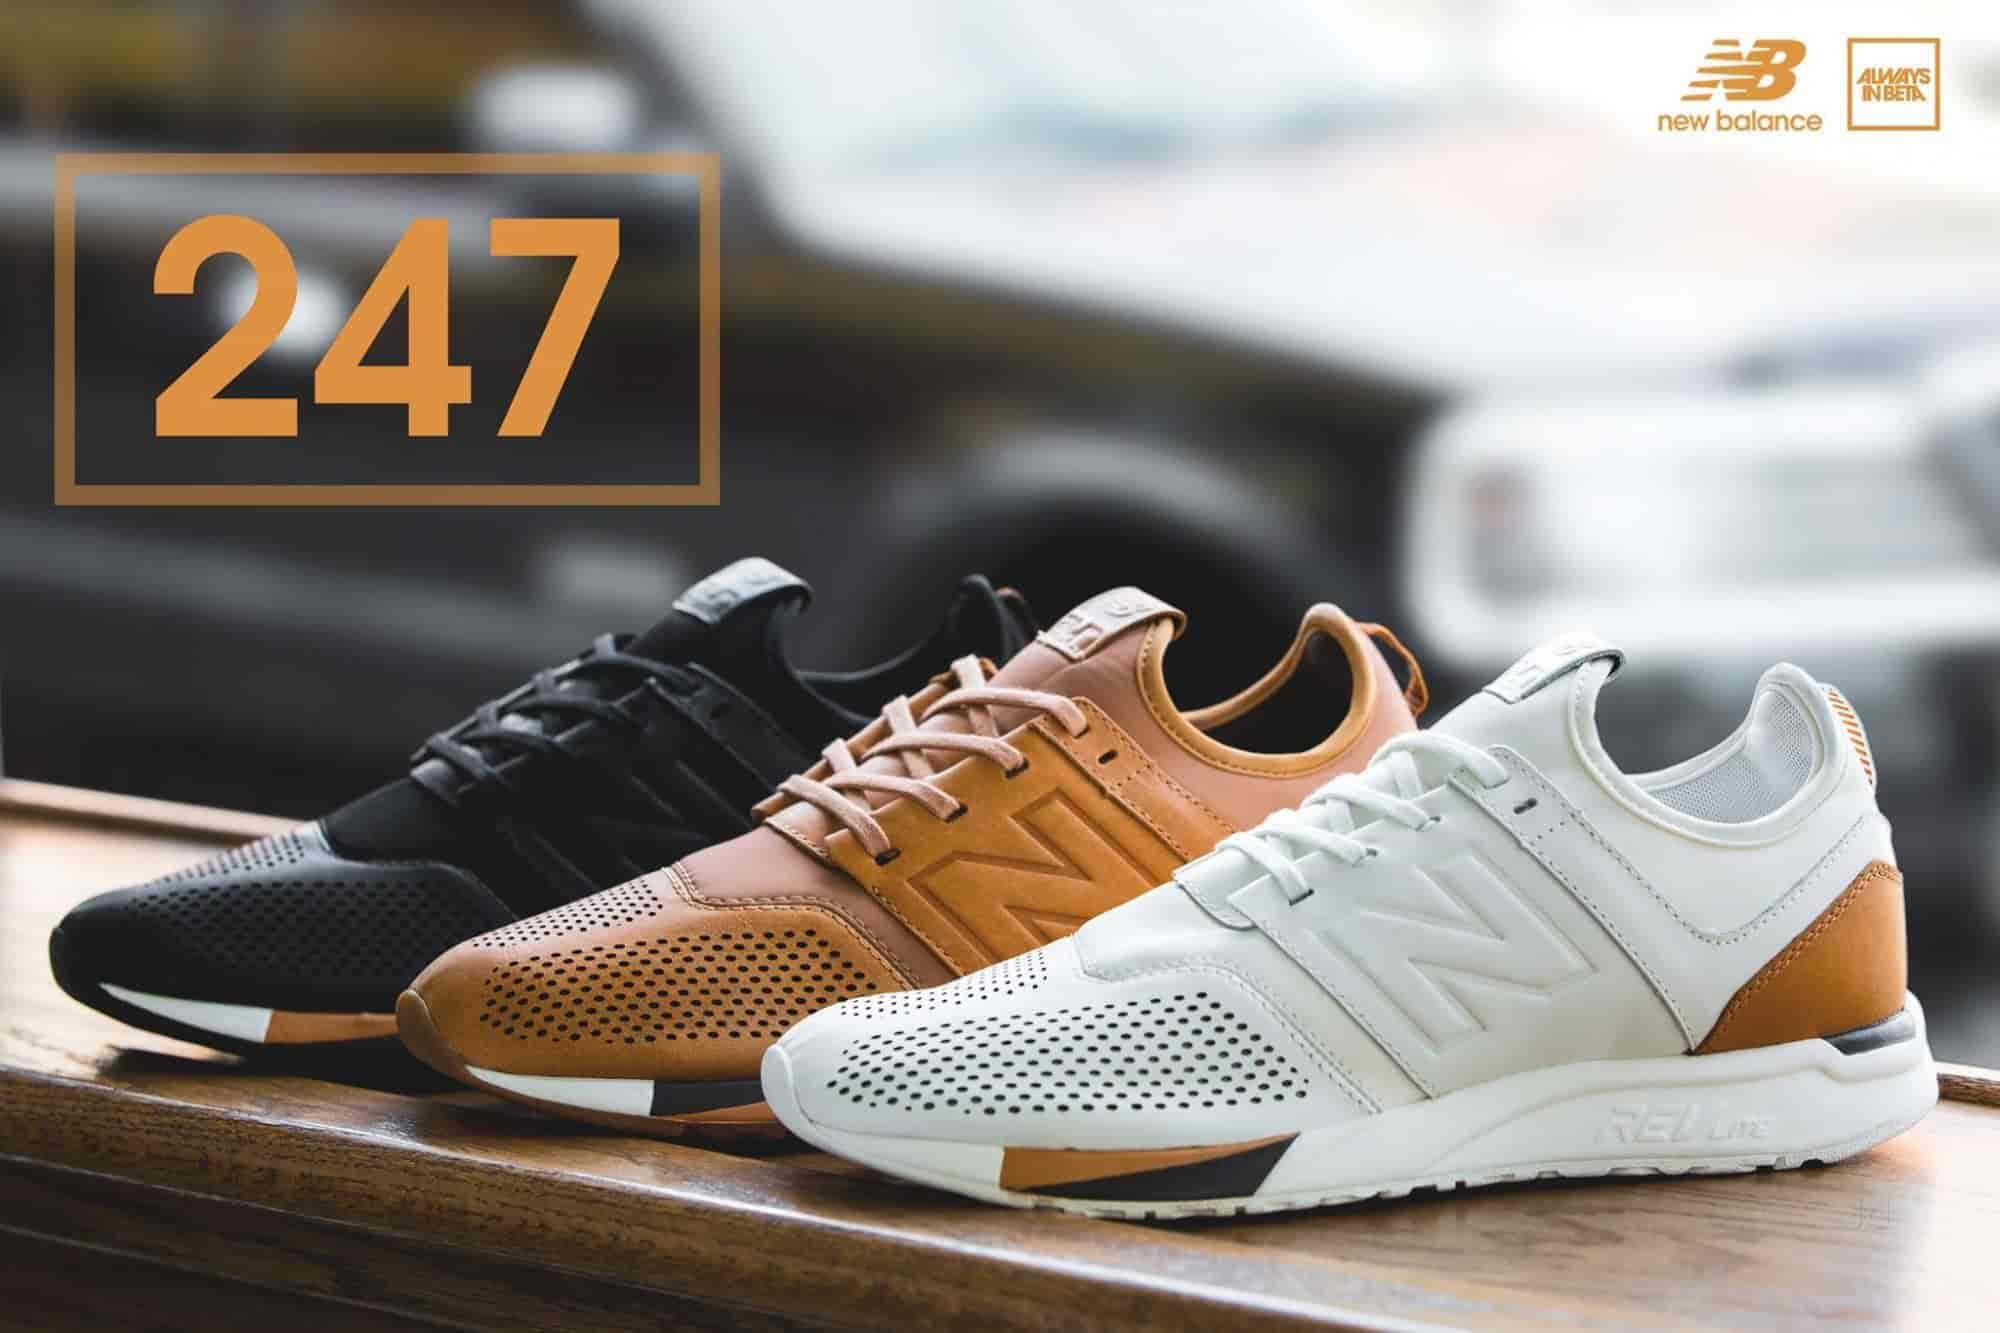 new balance shoes delhi